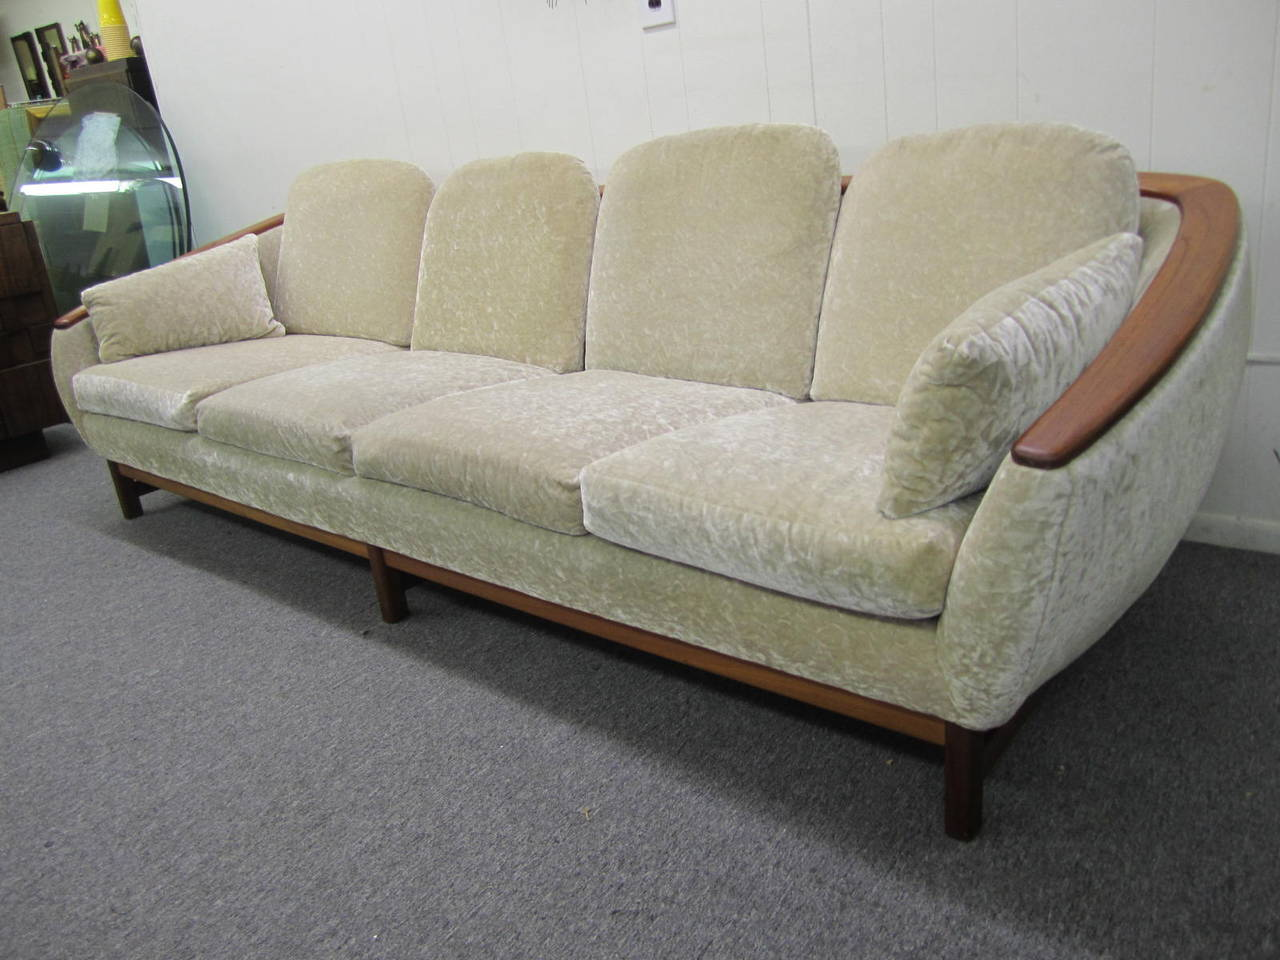 dazzling r huber curved back teak sofa mid century danish modern for sale at 1stdibs. Black Bedroom Furniture Sets. Home Design Ideas